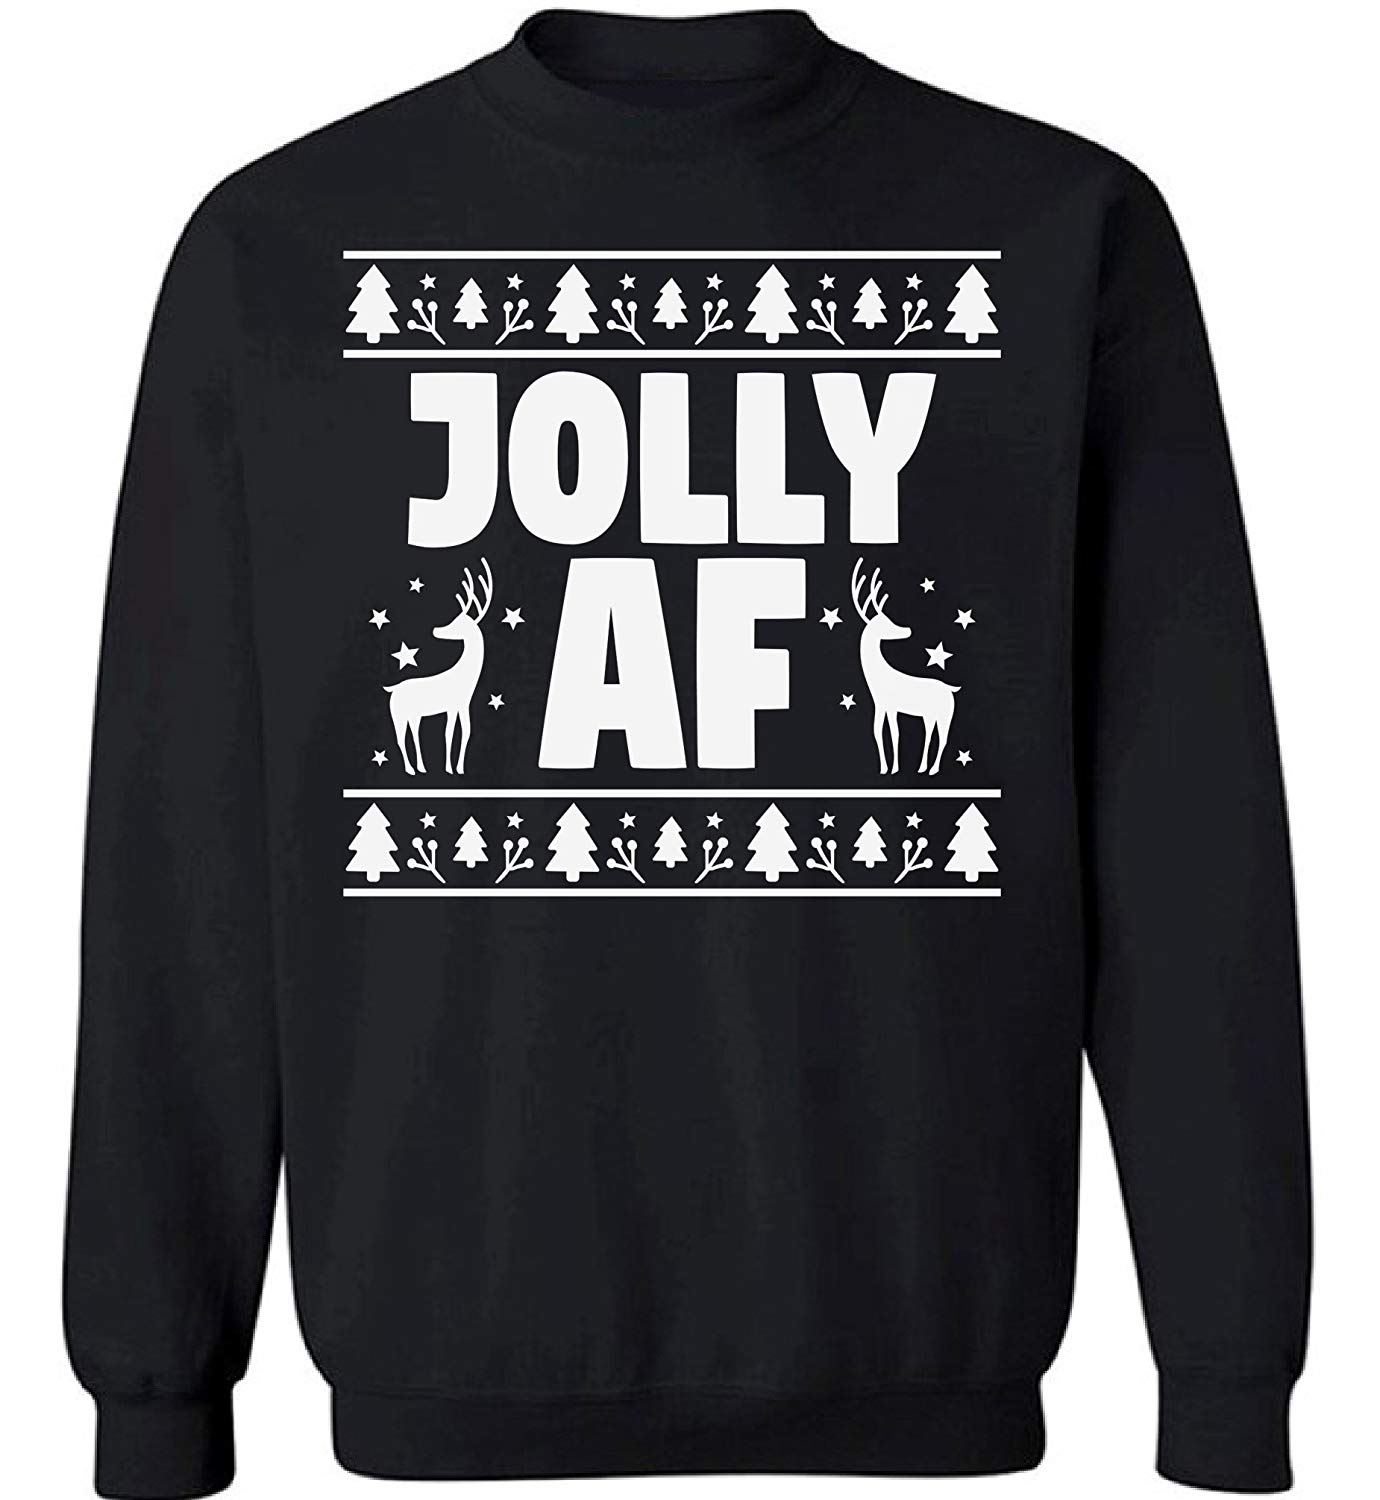 7a885ef3 Get Quotations · Raxo Jolly AF Ugly Christmas sweater Christmas sweatshirt  Jolly AF Christmas sweater Funny Christmas Sweater Party